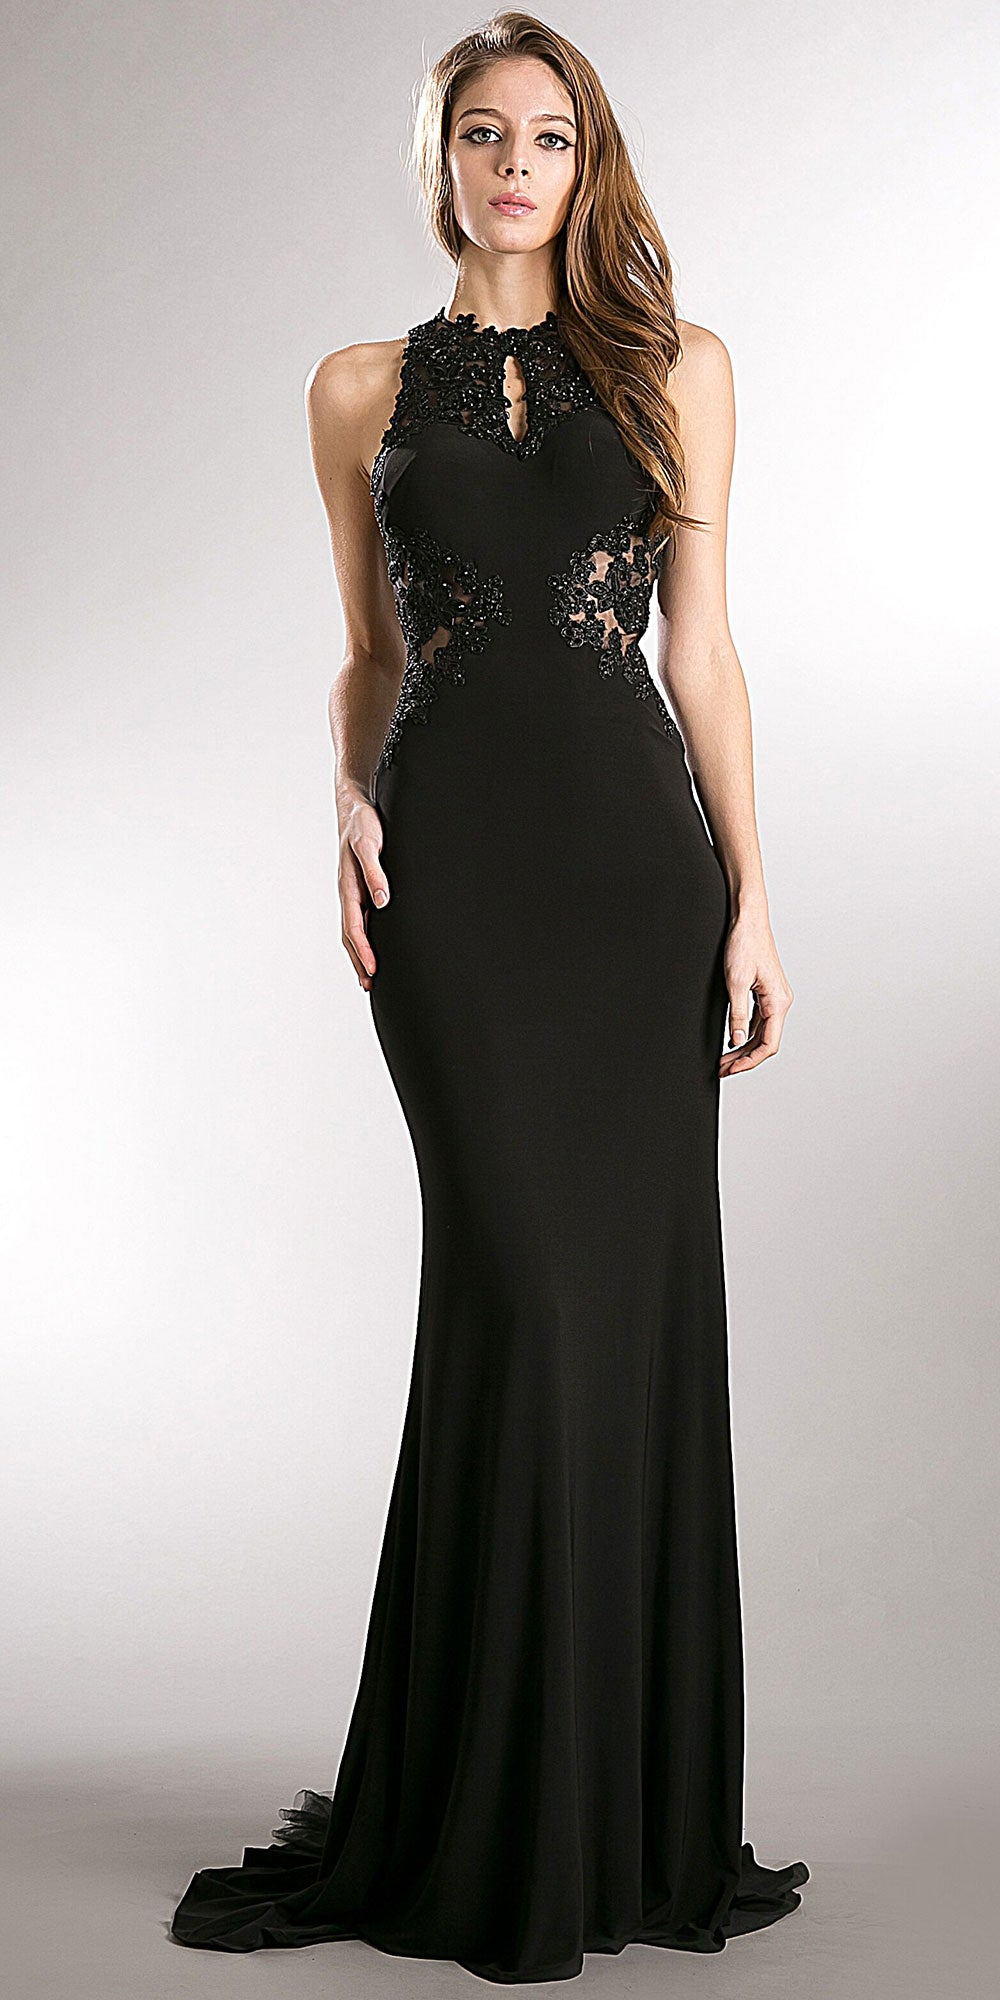 Image of Beaded Lace & Mesh Bodice Long Prom Pageant Dress in Black